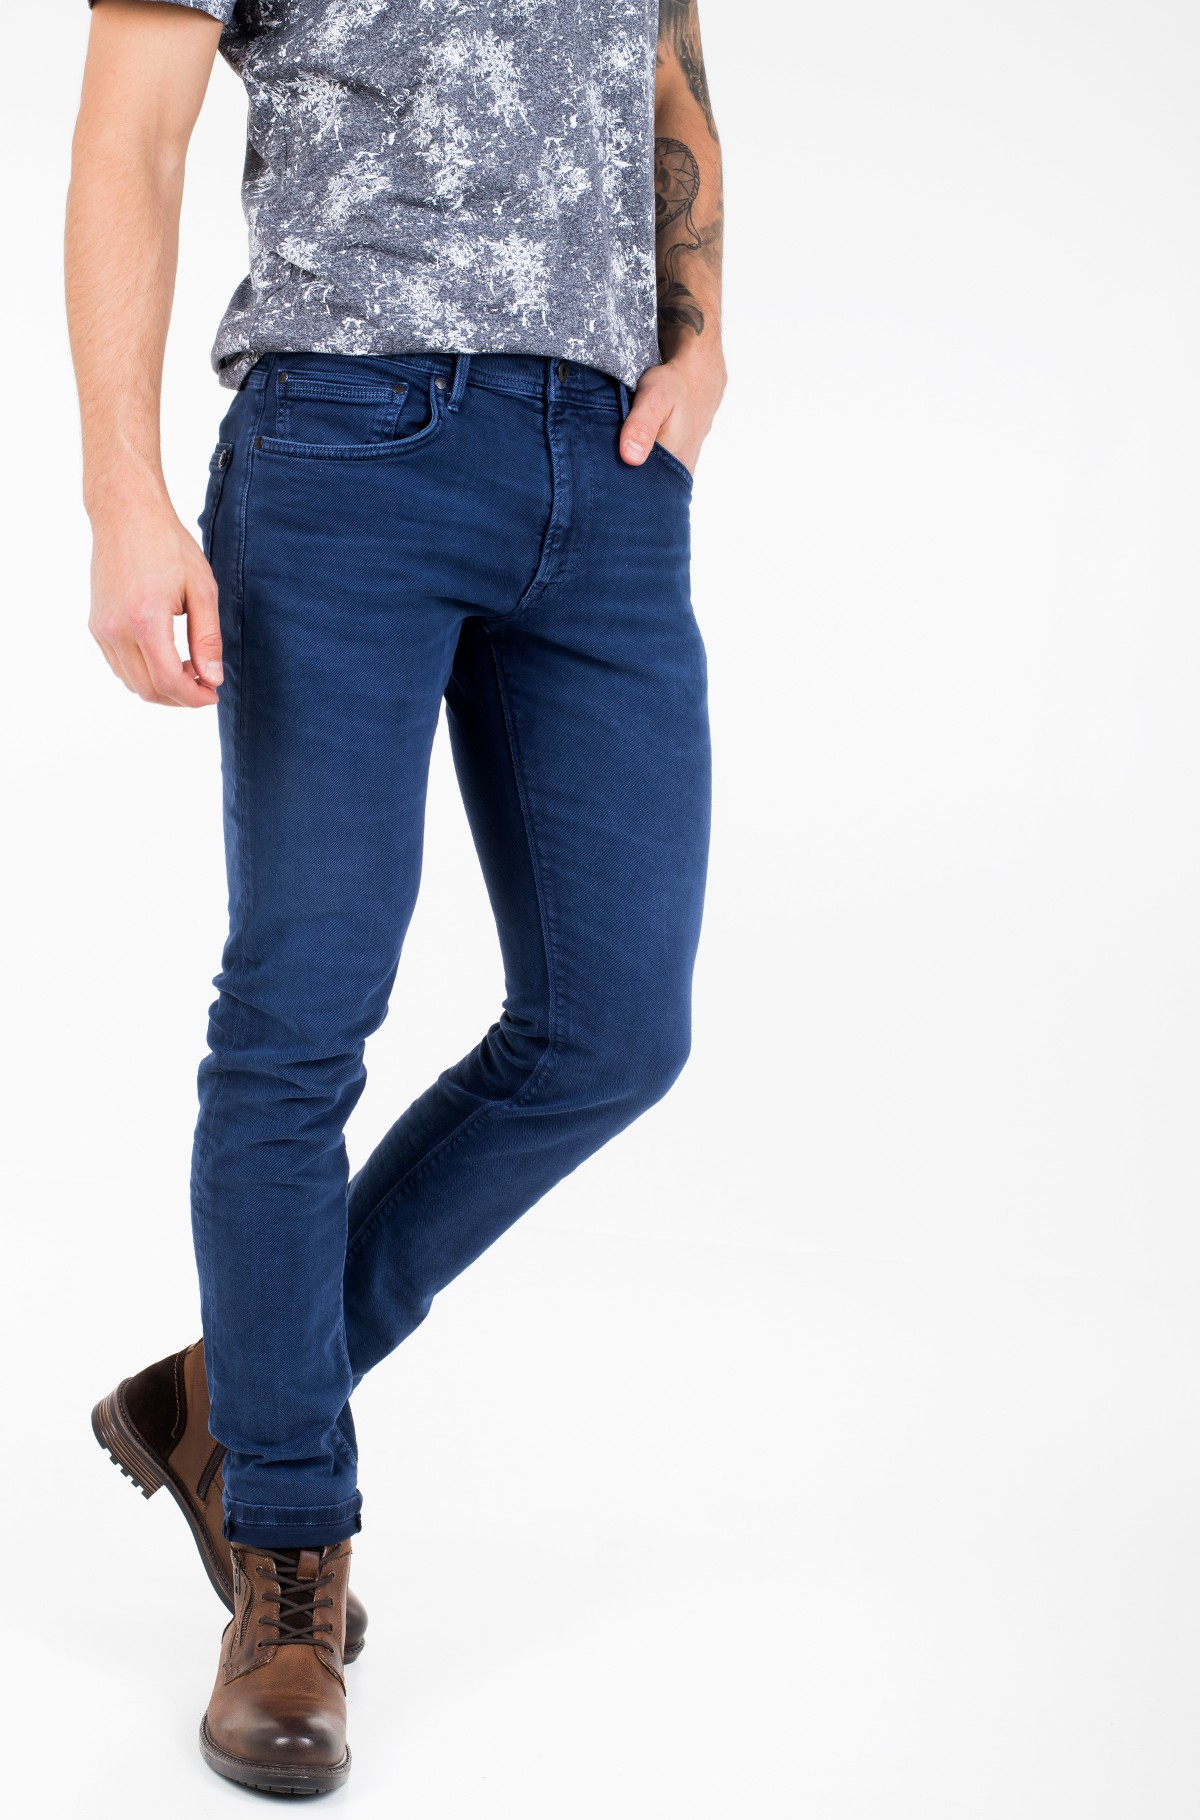 Jeans STANLEY/PM210947YB2-full-1